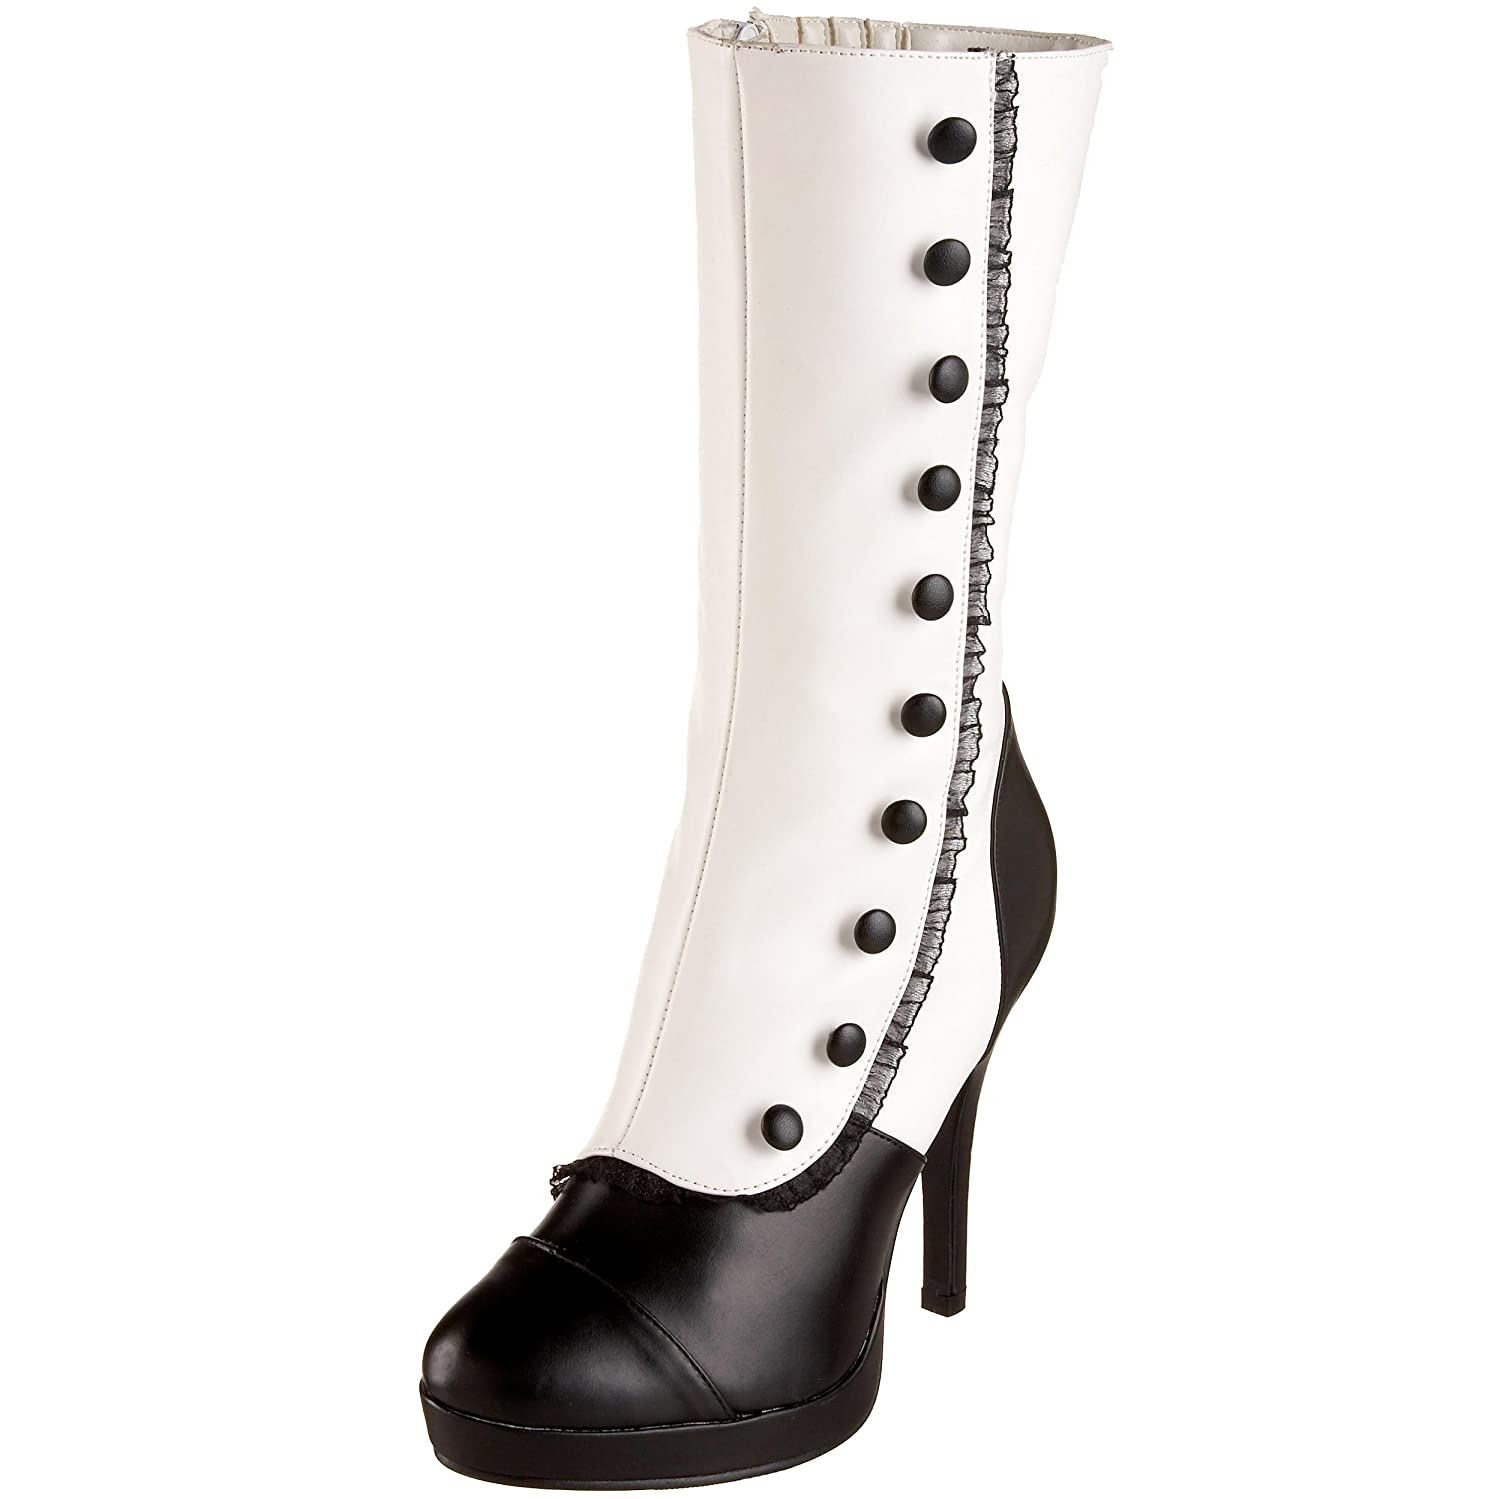 Steampunk Boots & Shoes, Heels & Flats Womens Splendor-130 Mid-Calf Boot $126.63 AT vintagedancer.com